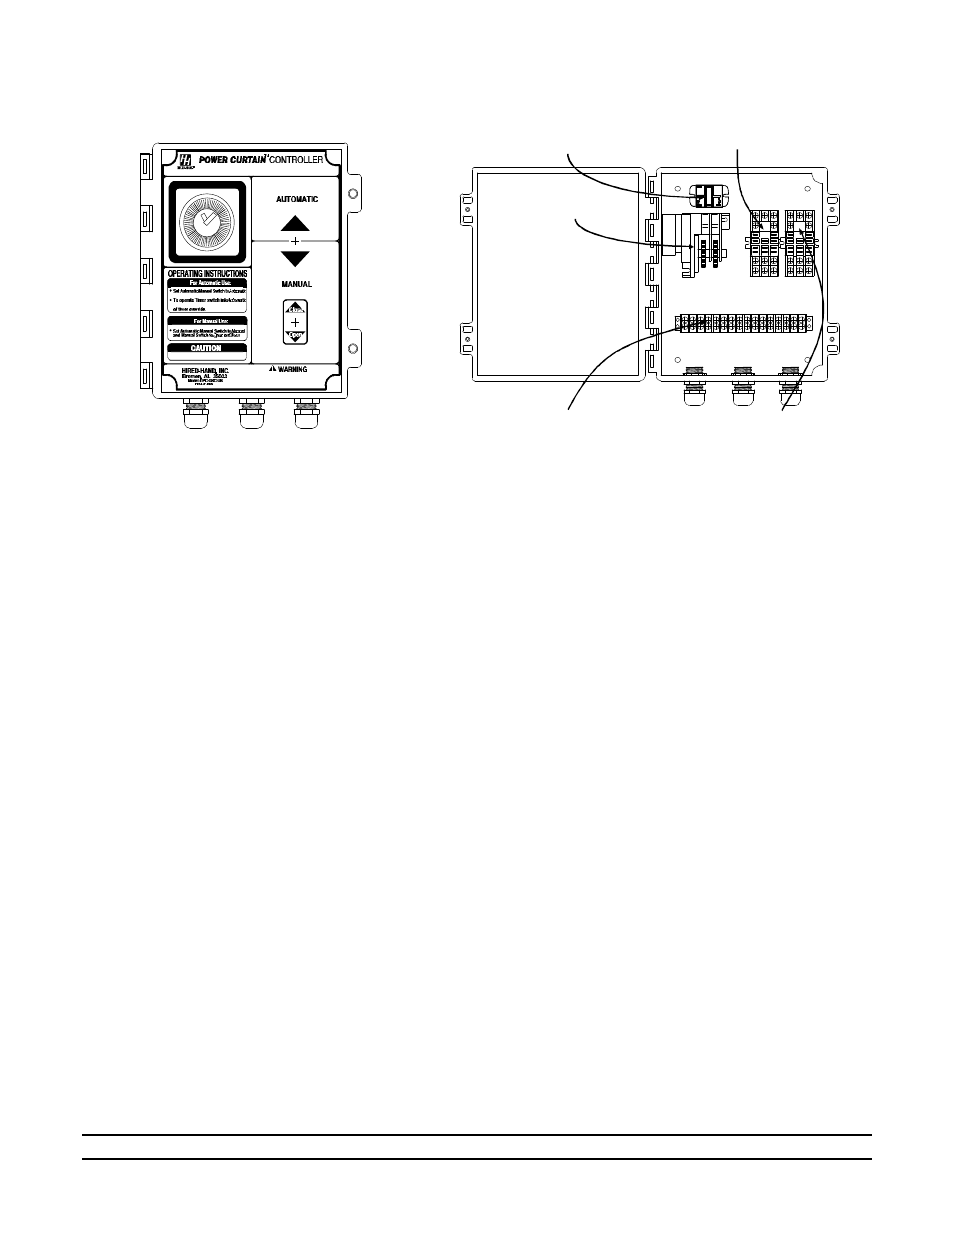 Physical Description Use Of Equipment Installation Hired Hand Relay Switch Motor Controller Electro Mechanical Controls Switches Pc Db Curtain With Timer Override